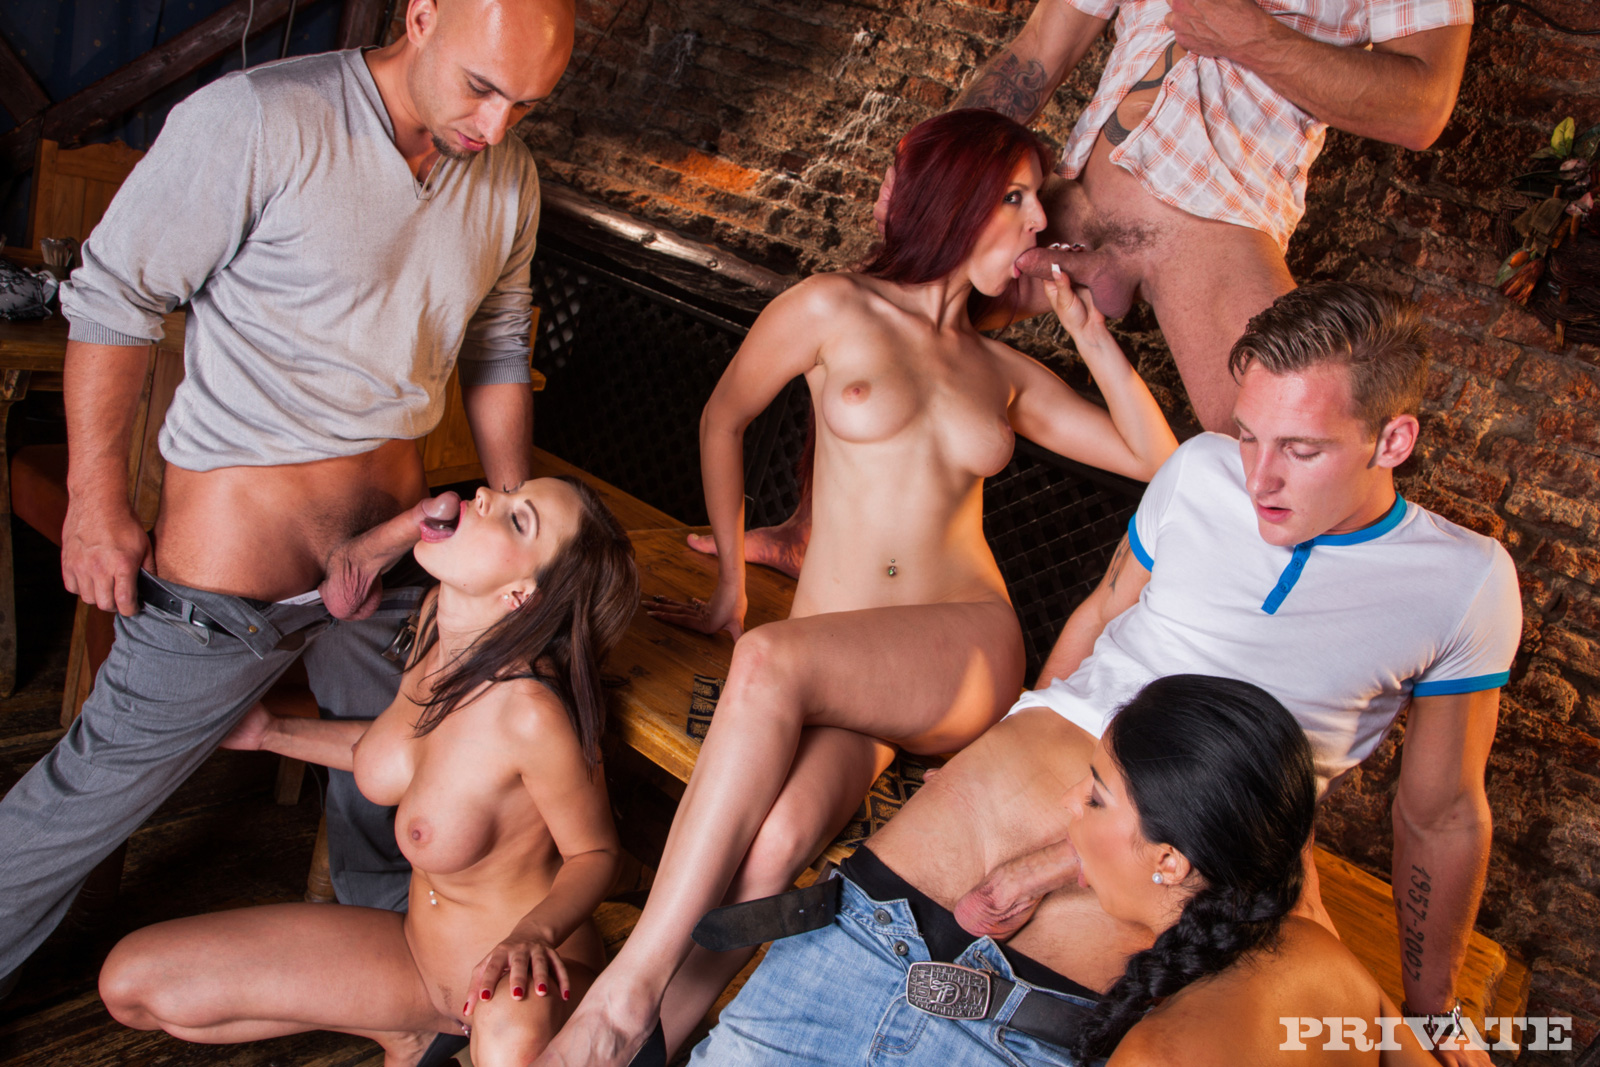 Ending The Work With Group Sex